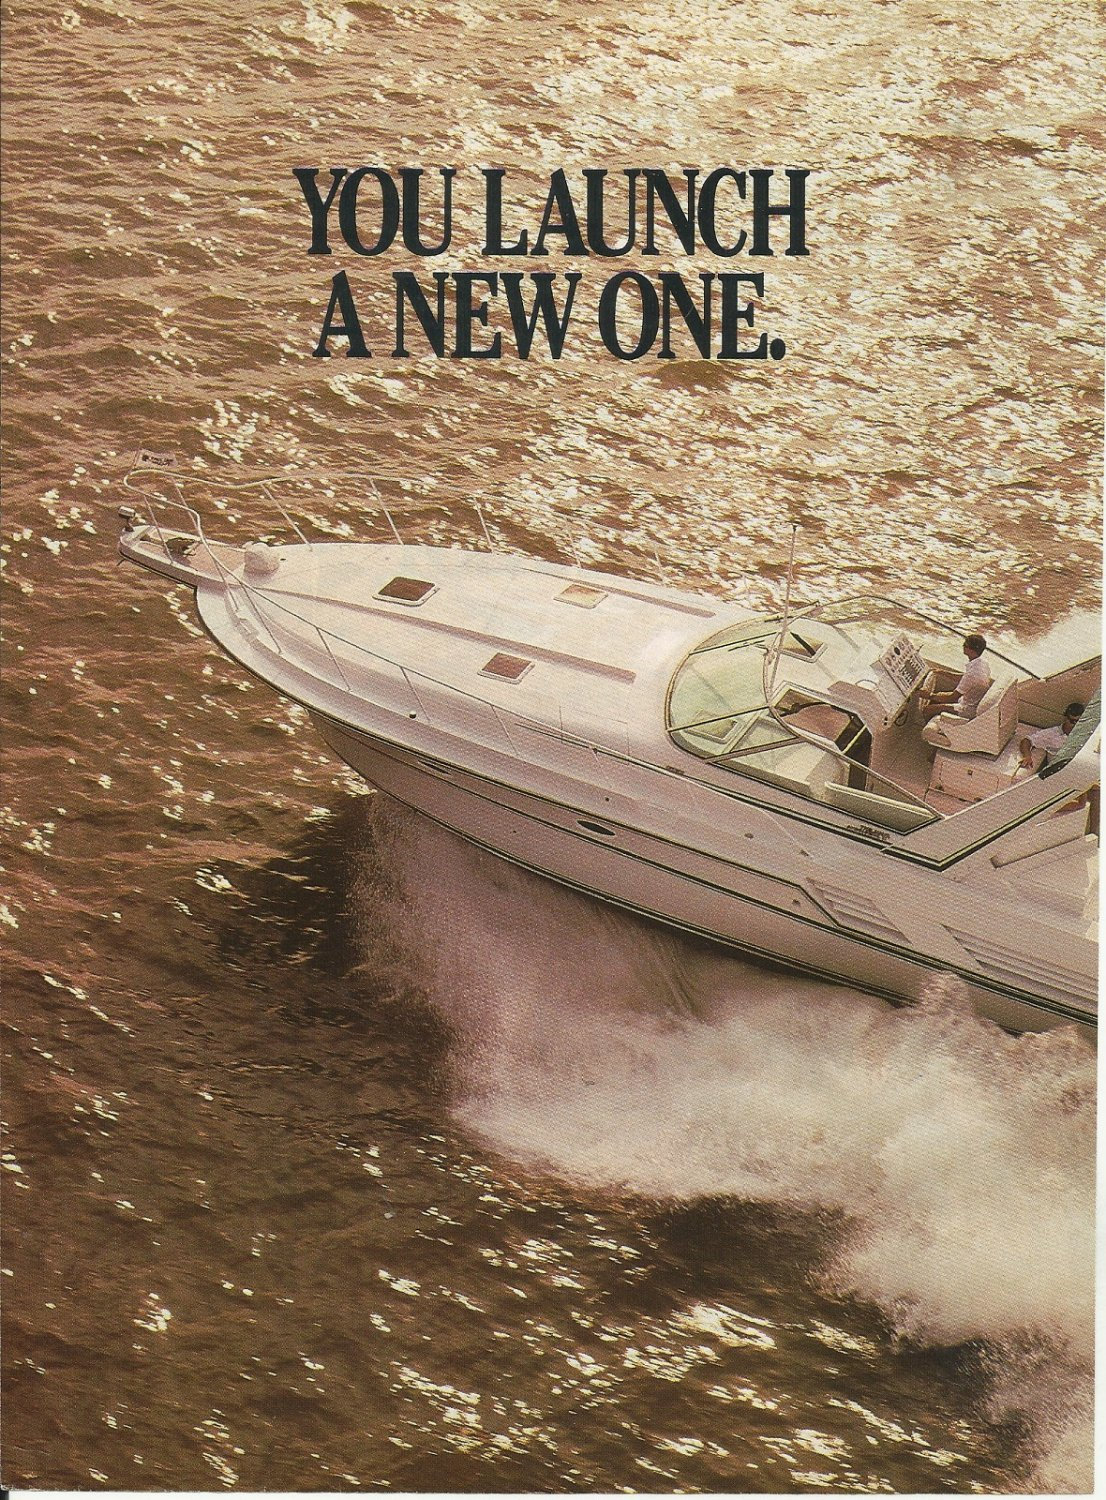 1989 Trojan Yacht 3 Page Color Ad- The 10 Meter Express